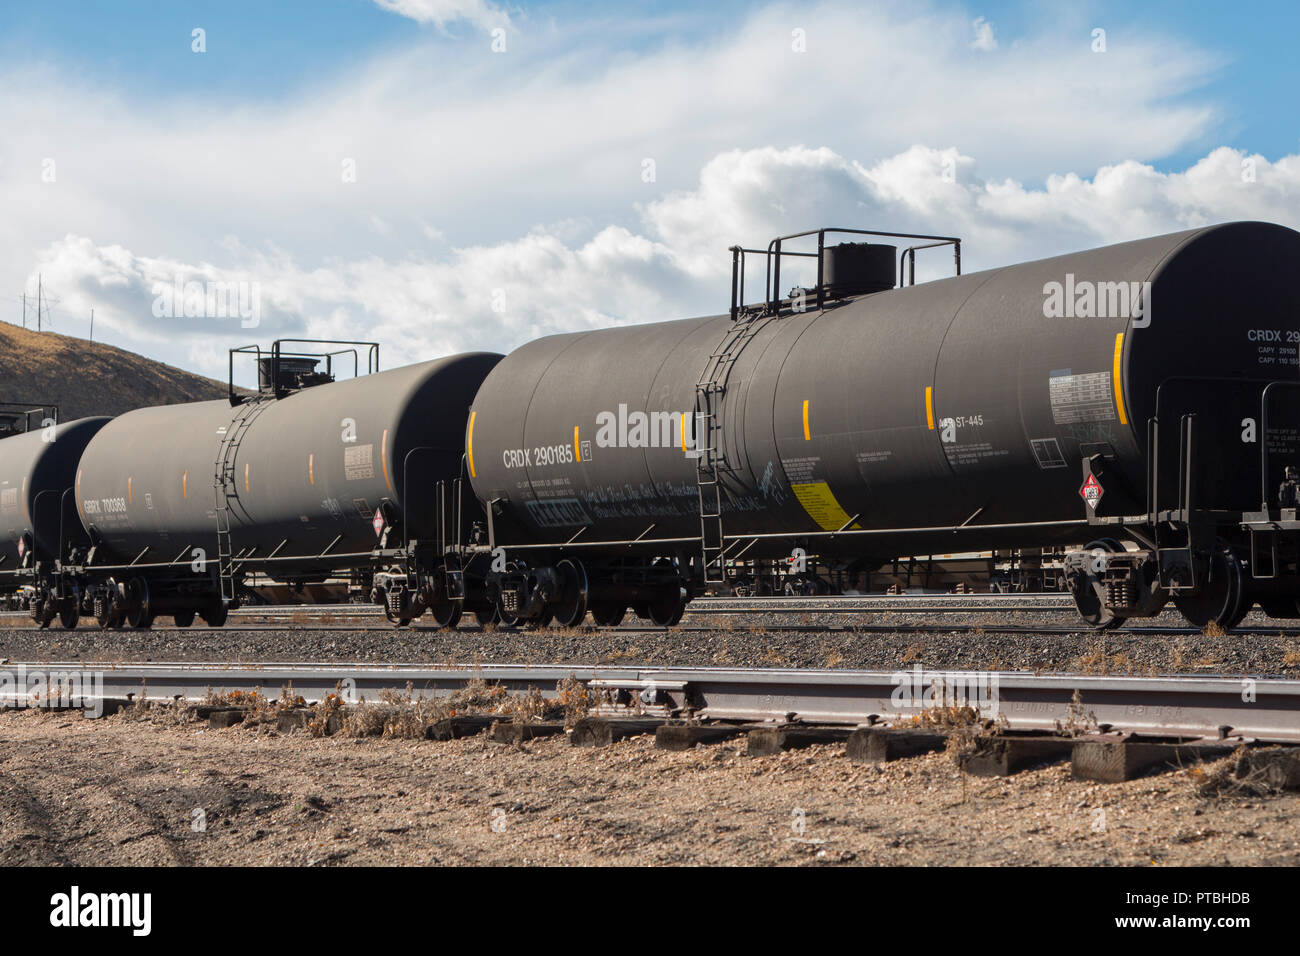 Railroad tank cars carrying hazardous materials on a siding in a train yard. - Stock Image